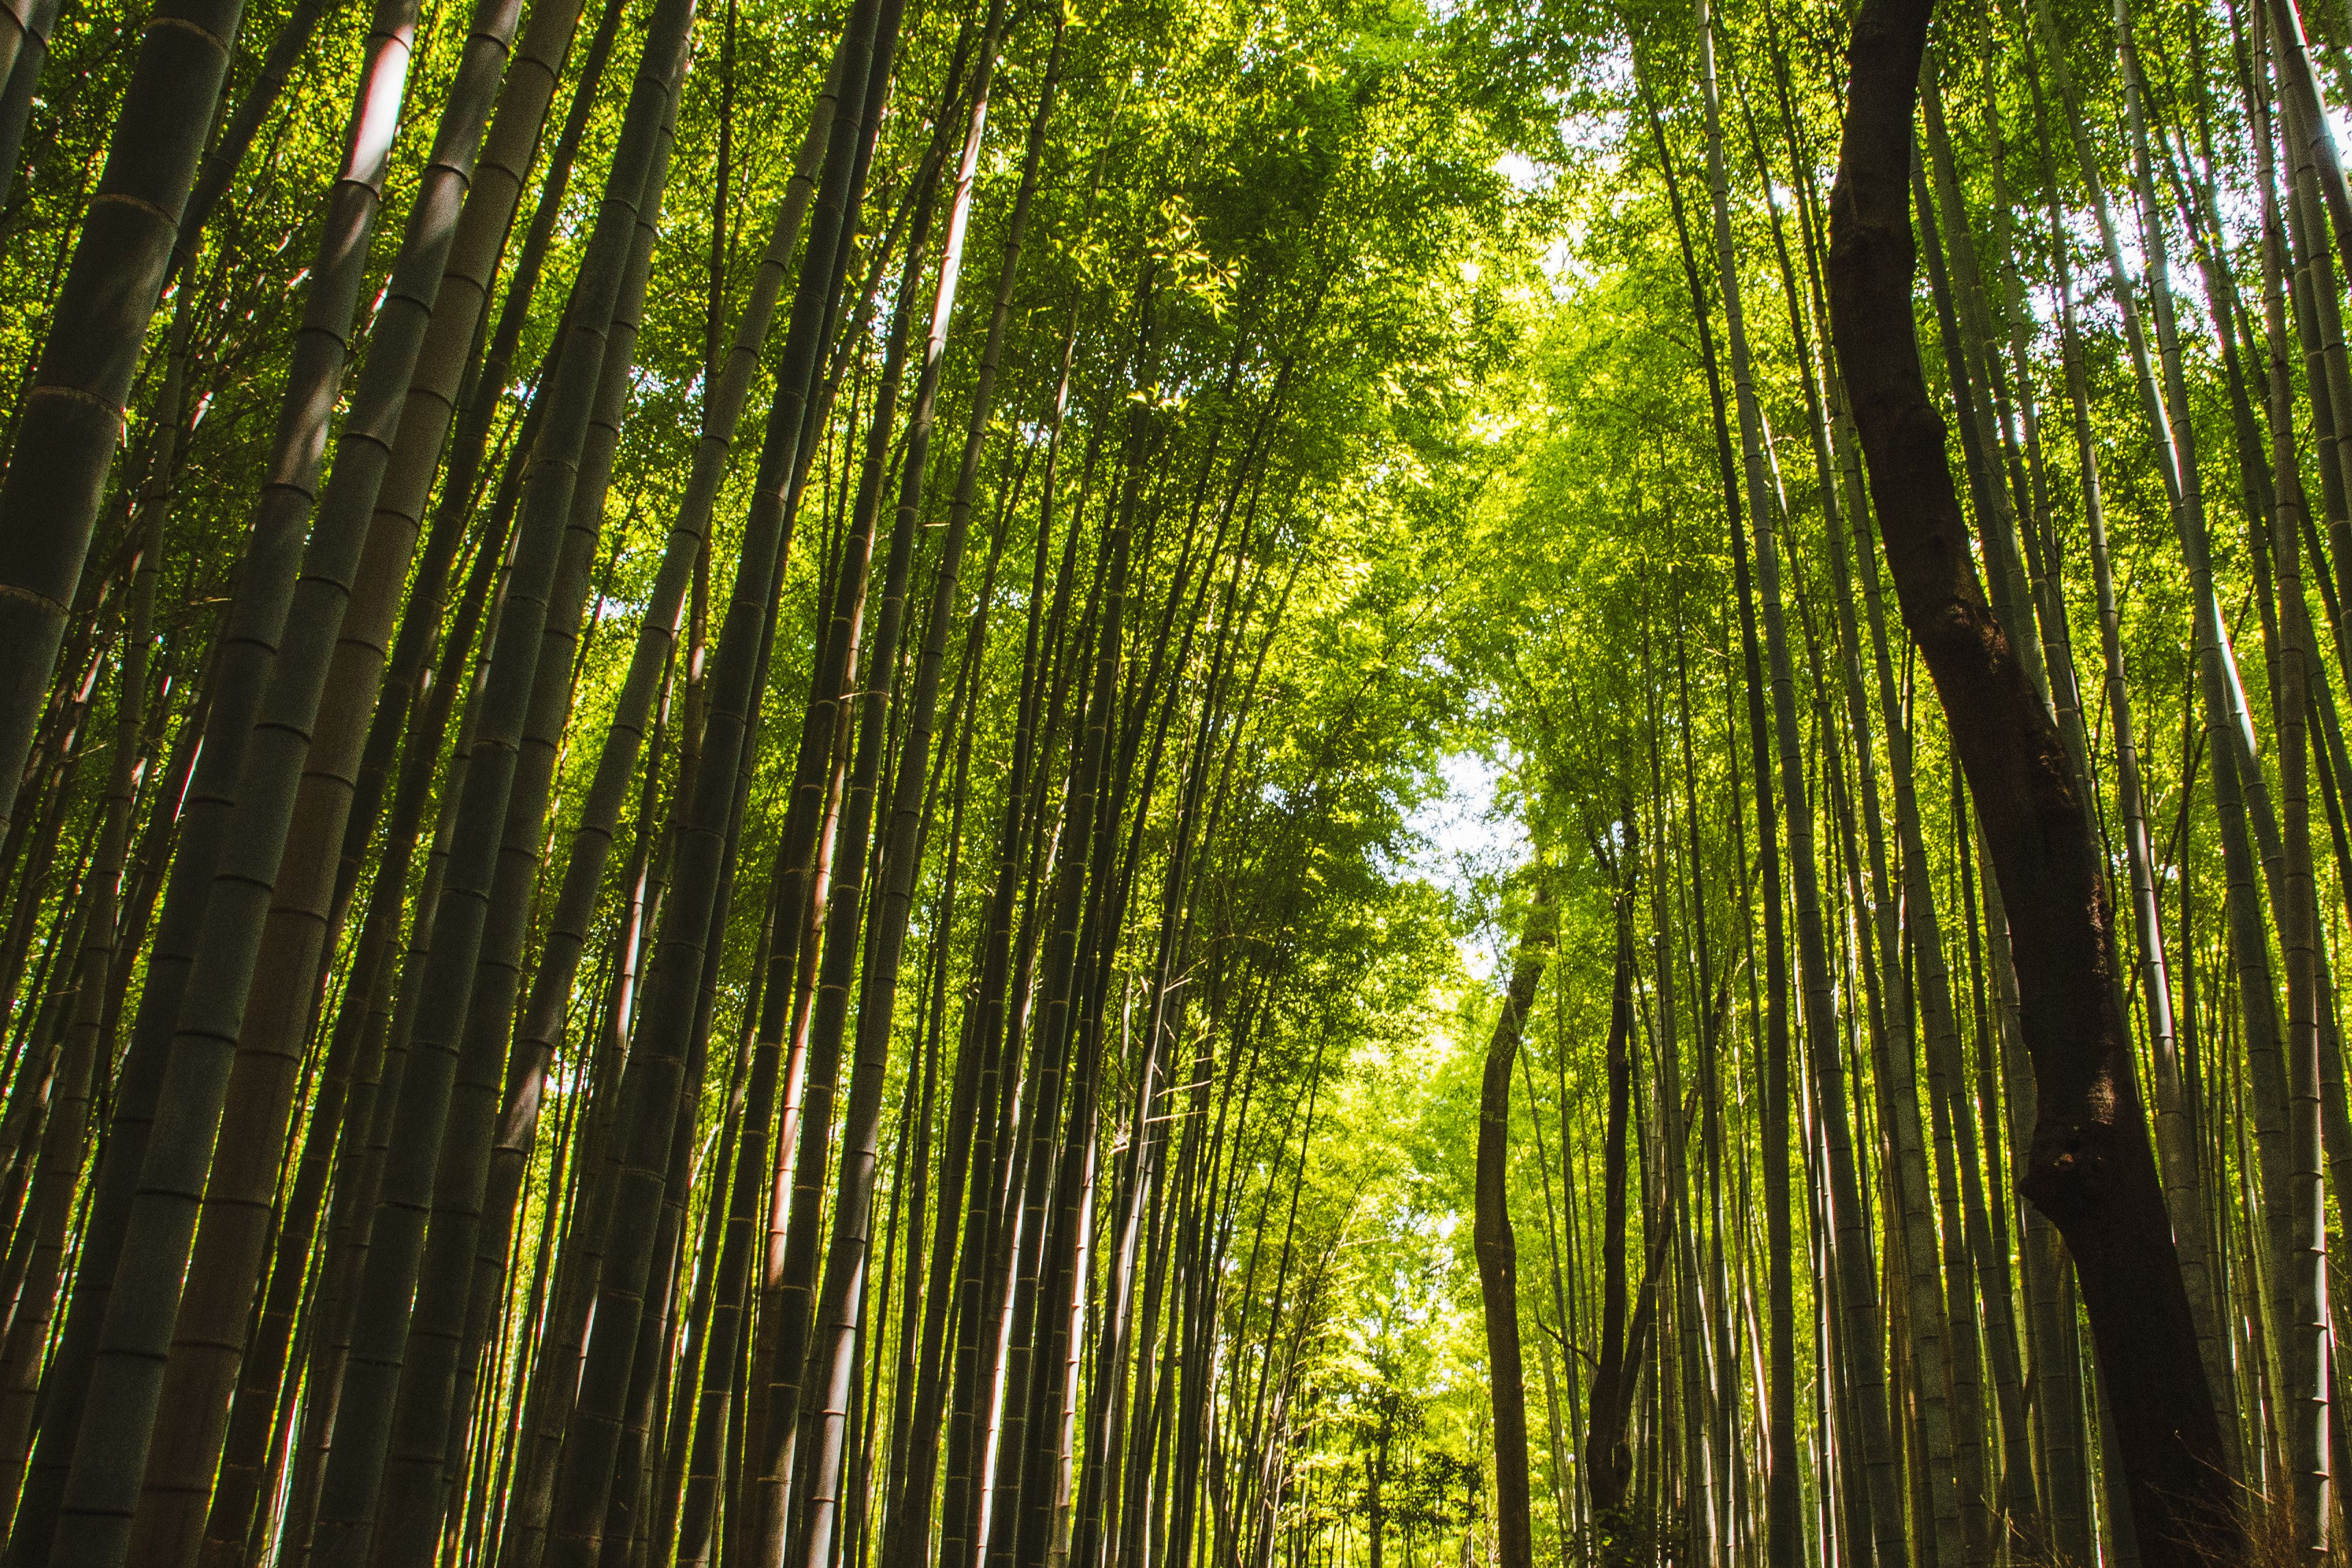 Kyoto's Bamboo Forest: The Complete Guide